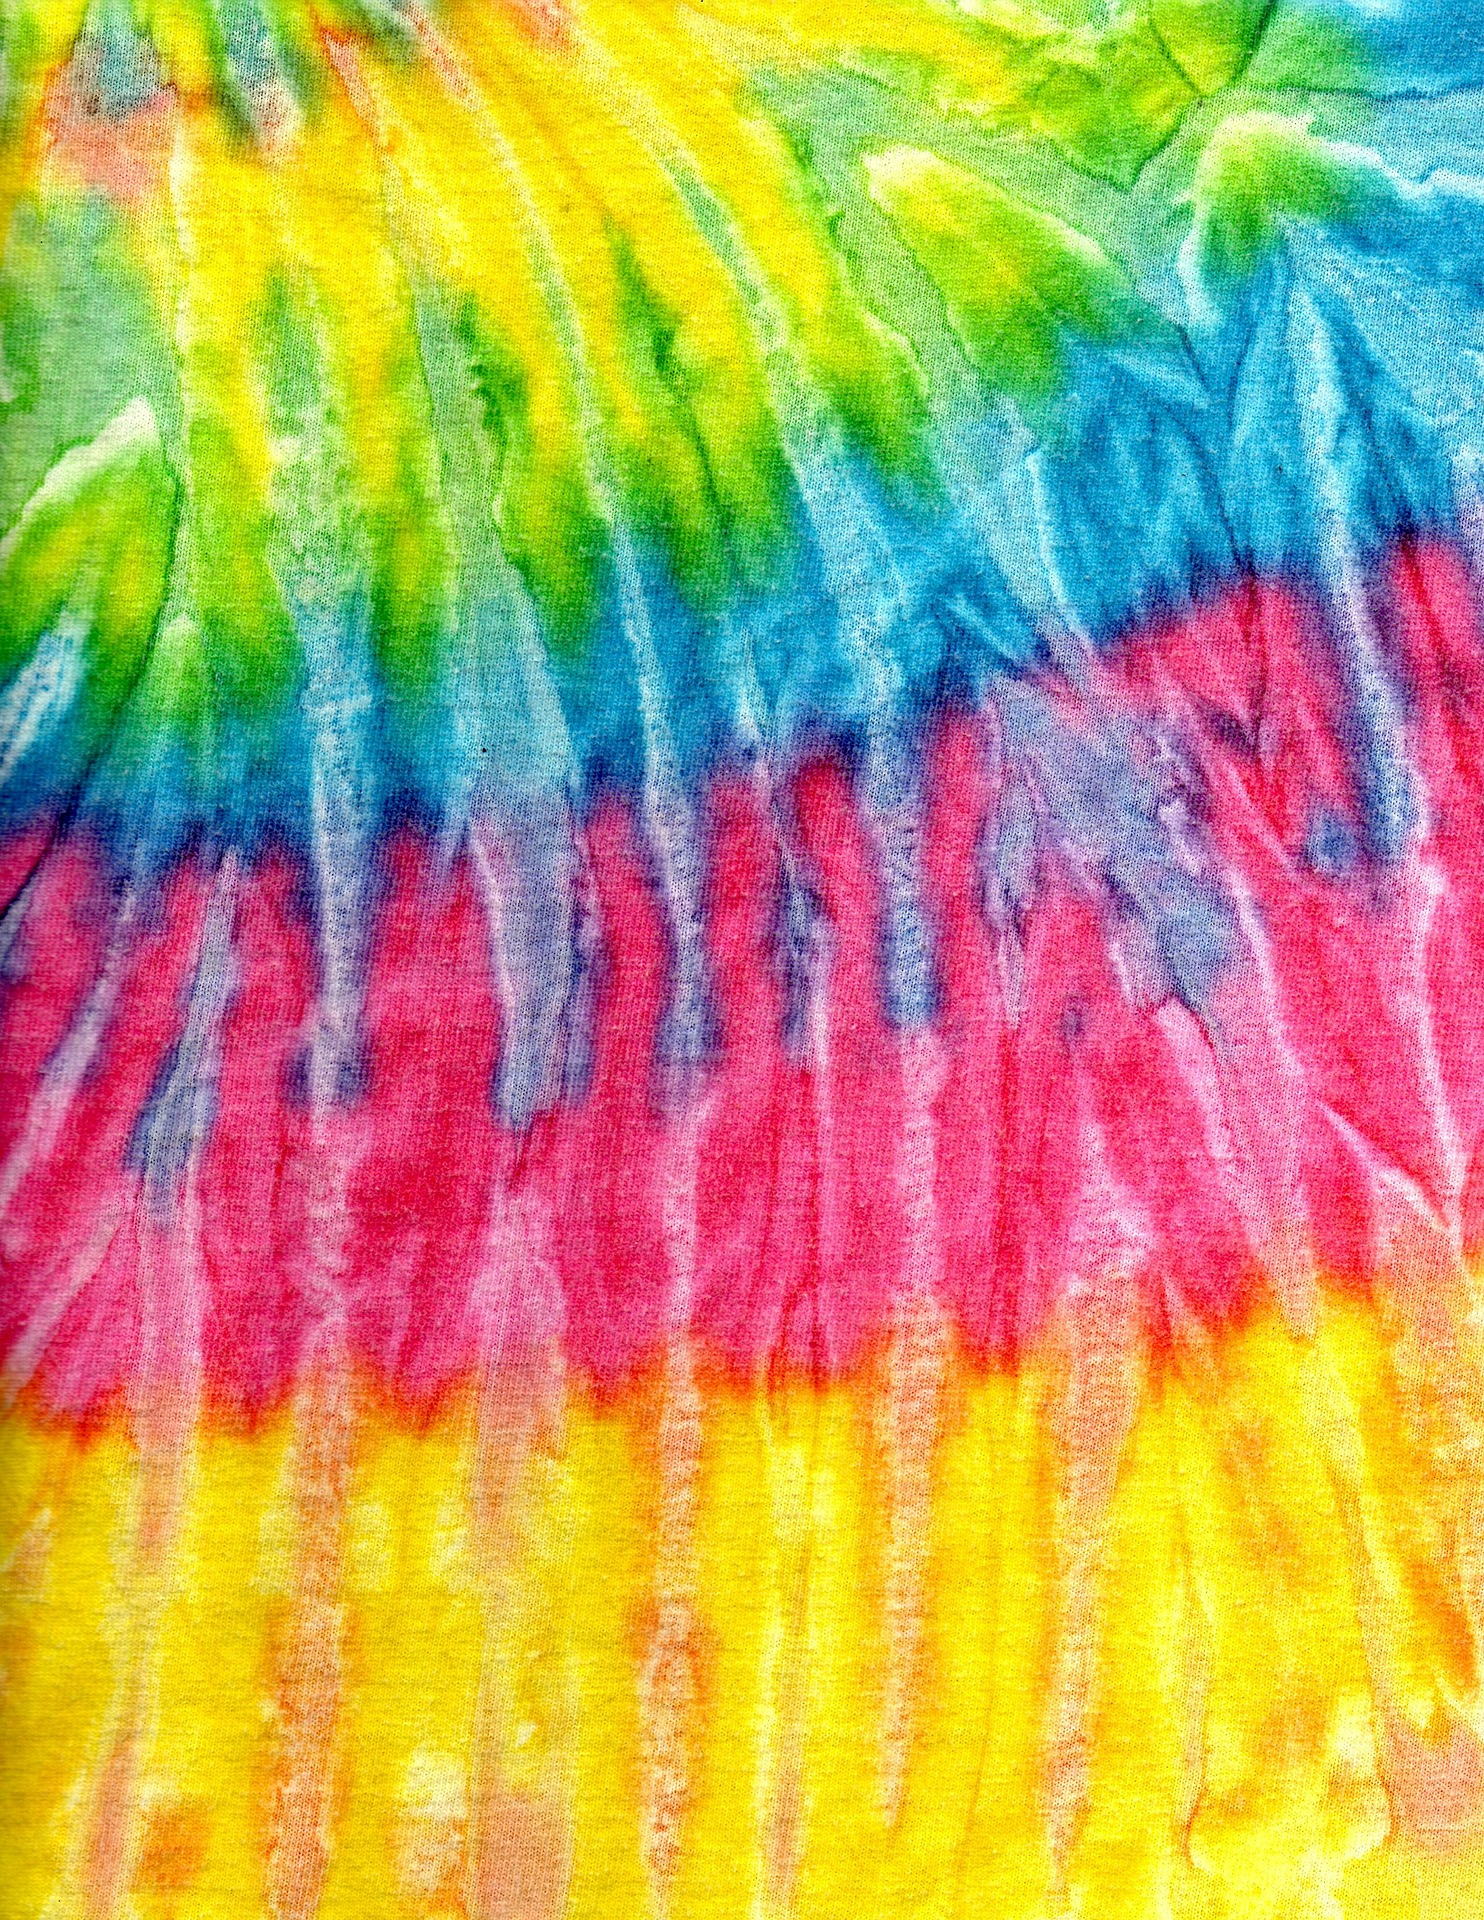 History of Bandhani or Indian Tie & Dye Technique | The Adair Group